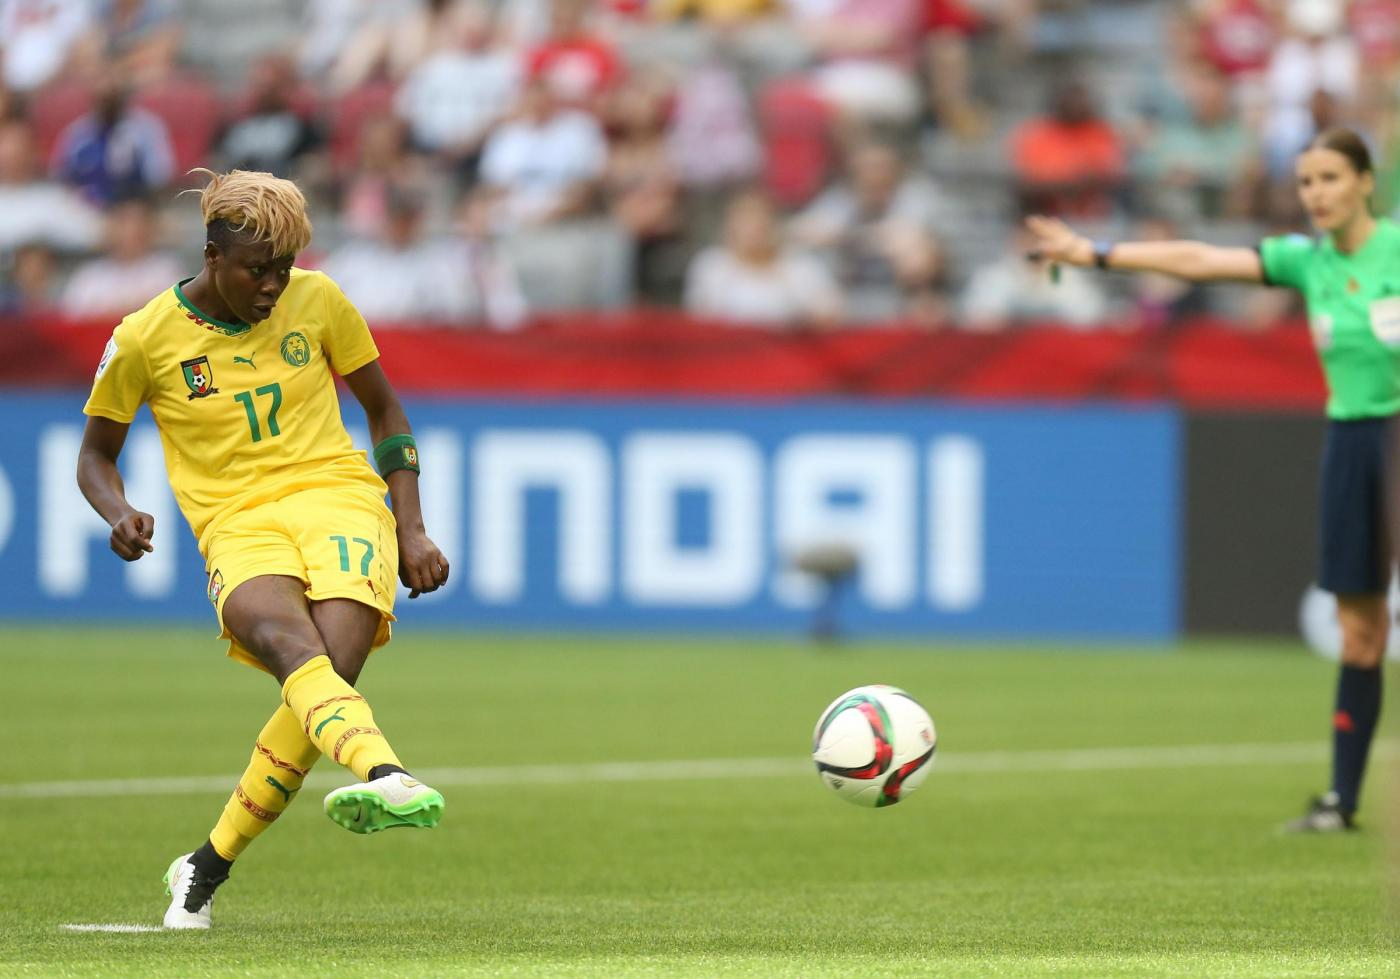 (150609) -- VANCOUVER, Jun. 9, 2015 (Xinhua) -- Gaelle Enganamouit of Cameroon shoots the penalty during the group C match between Cameroon and Ecuador at the 2015 FIFA Women's World Cup in Vancouver, Canada, June 8, 2015. (Xinhua/Qin Lang)